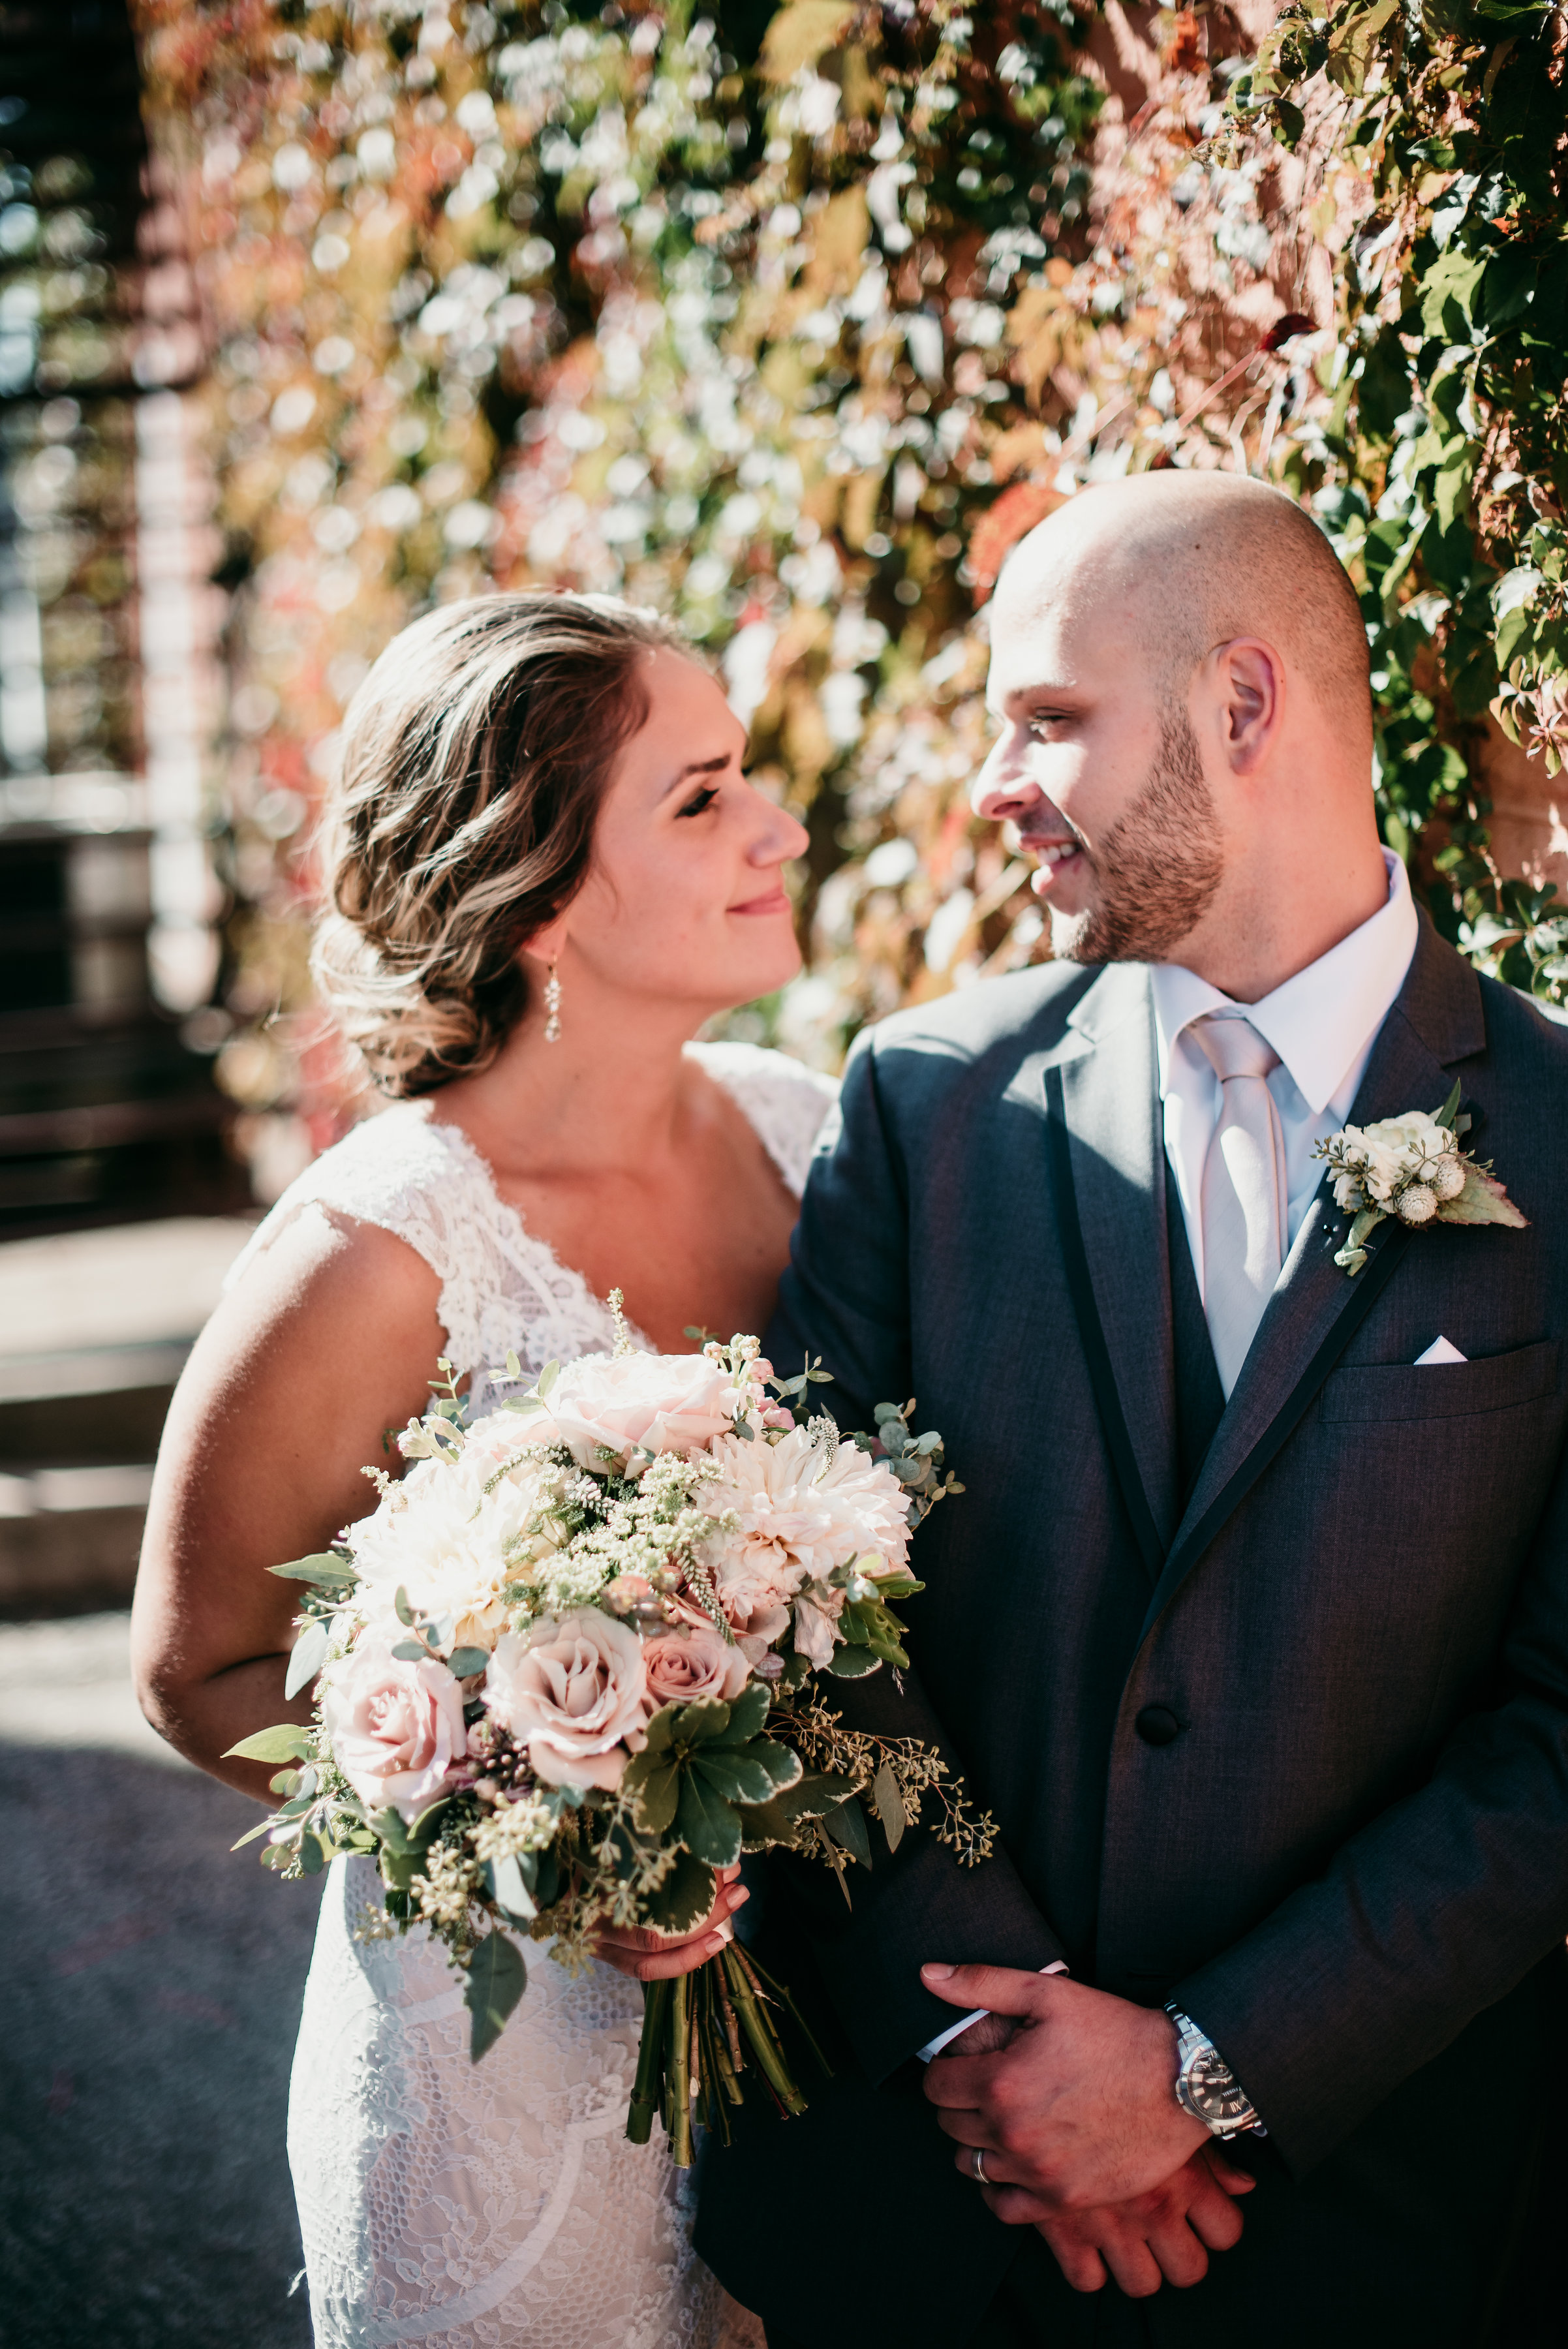 Mr. &Mrs. Obniski - After a few meetings, I can say that these guys look at each other like this often... heart eyes all the way.Photo: Tara Draper Photography